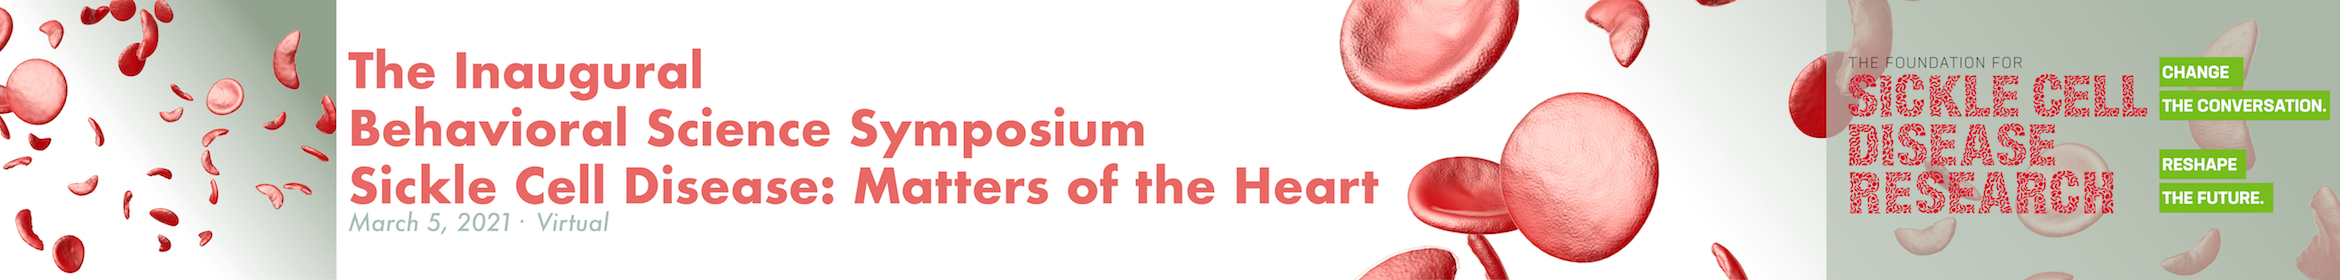 FSCDR's Inaugural Behavioral Science Symposium: Sickle Cell Disease, Matters of the Heart Main banner